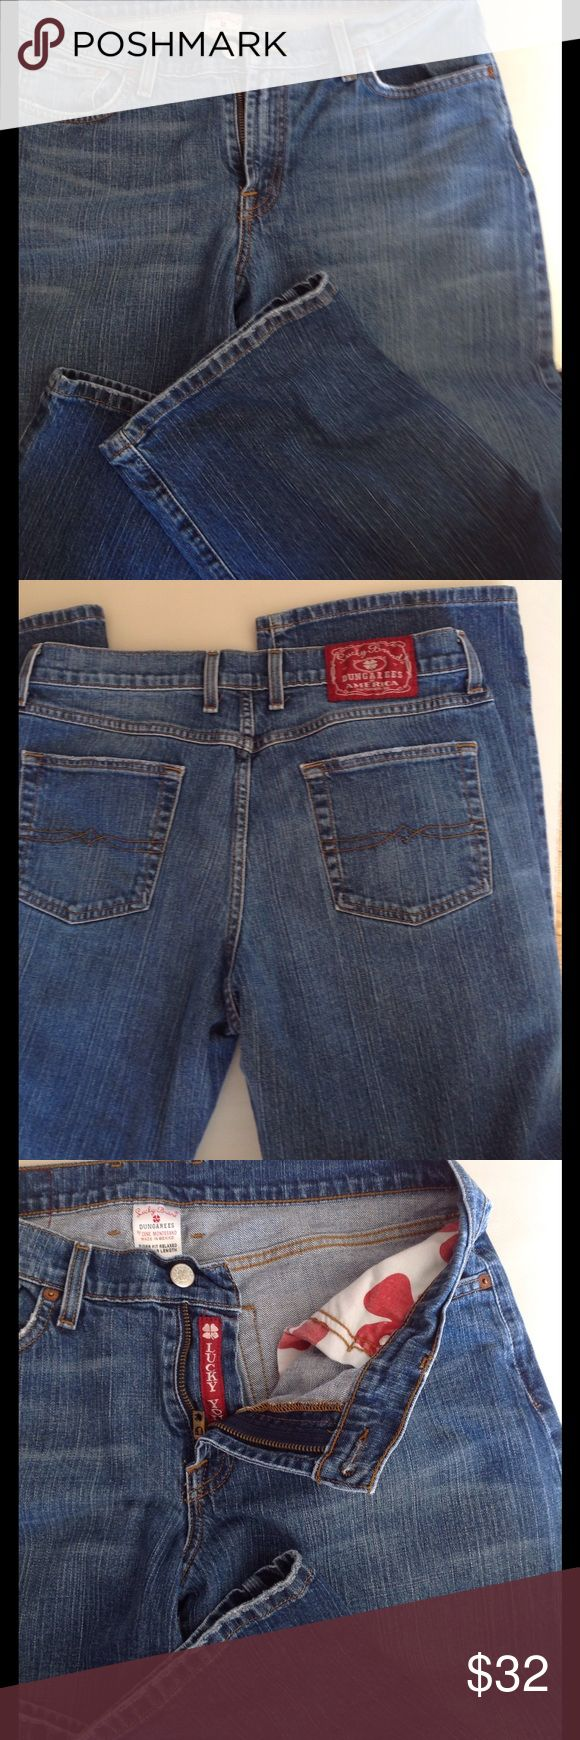 Lucky Brand jeans New Lucky Brand Dungarees jeans , size 14/32. Lucky Brand Jeans Straight Leg